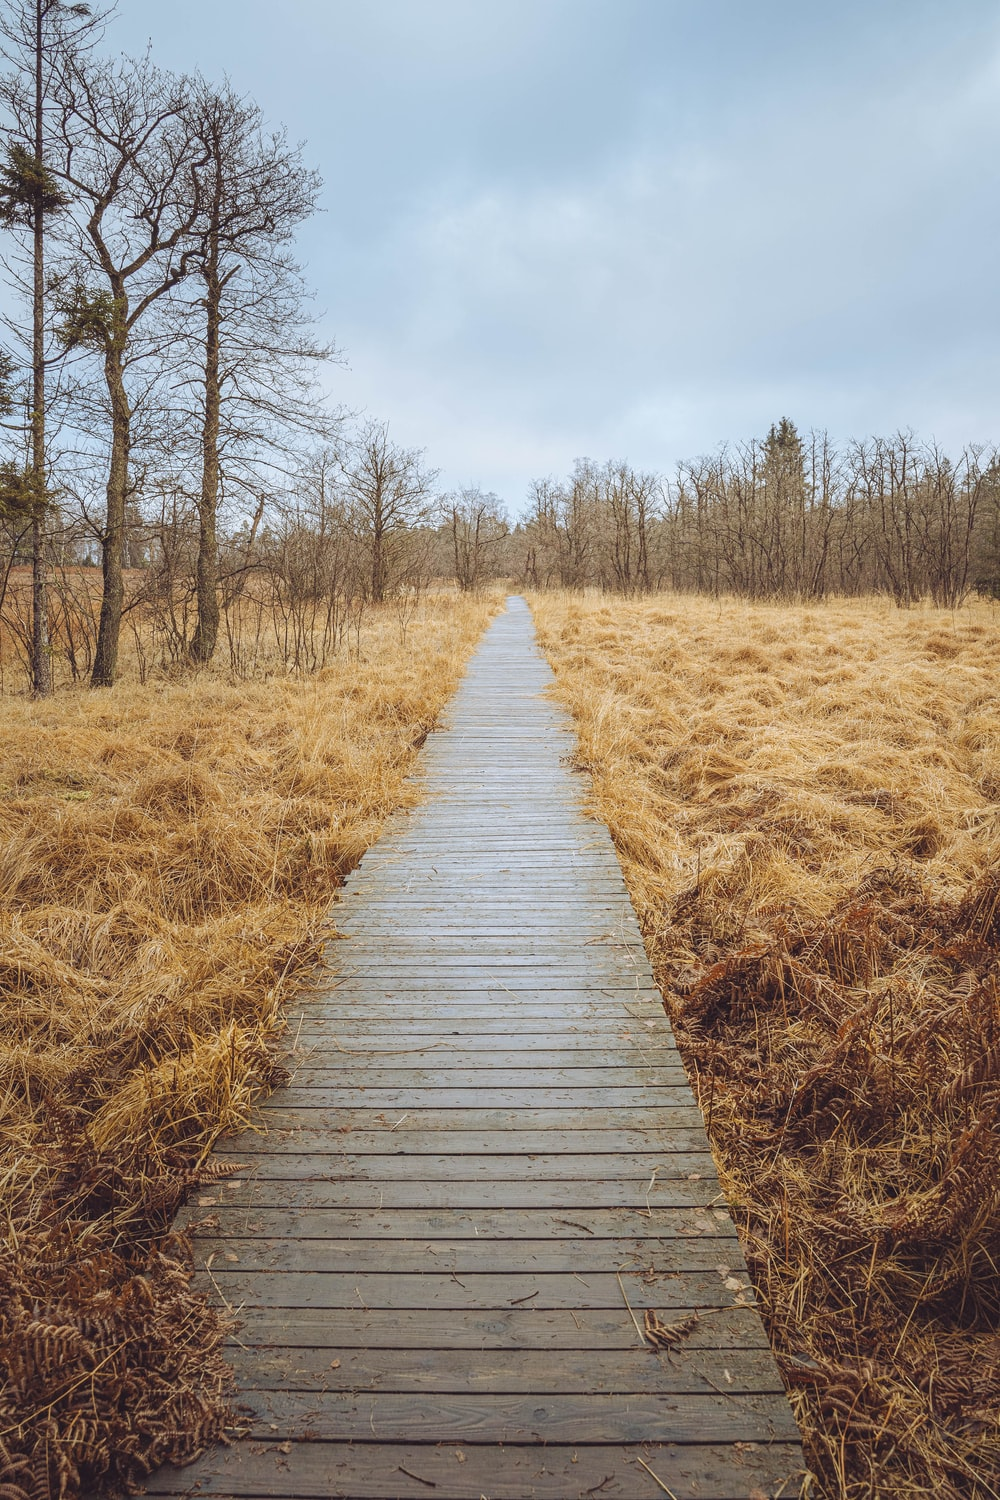 brown wooden pathway between brown grass field during daytime